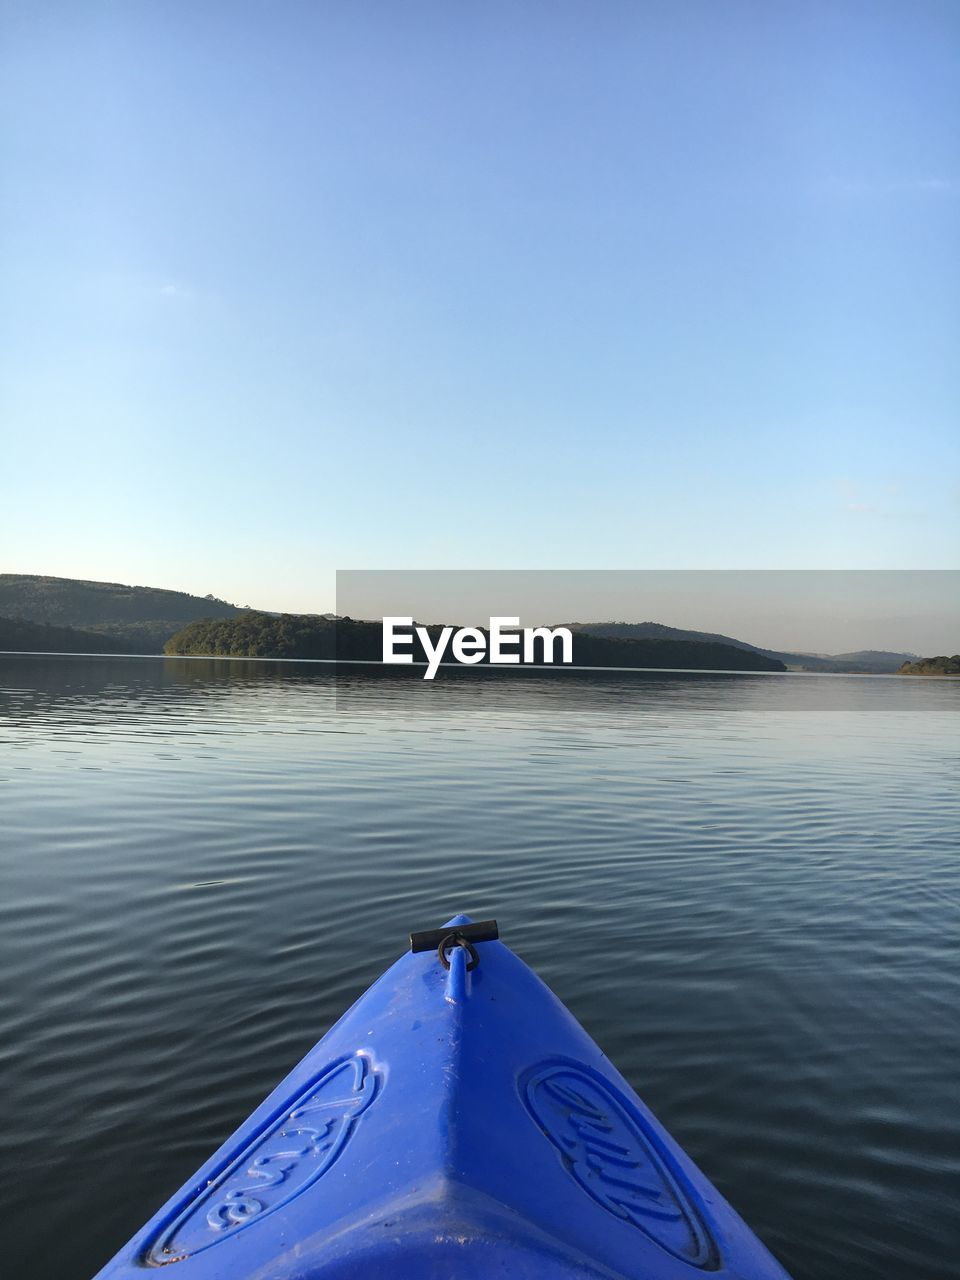 water, blue, sky, scenics - nature, tranquil scene, beauty in nature, tranquility, nature, lake, nautical vessel, day, no people, transportation, non-urban scene, kayak, copy space, mode of transportation, clear sky, outdoors, floating on water, inflatable